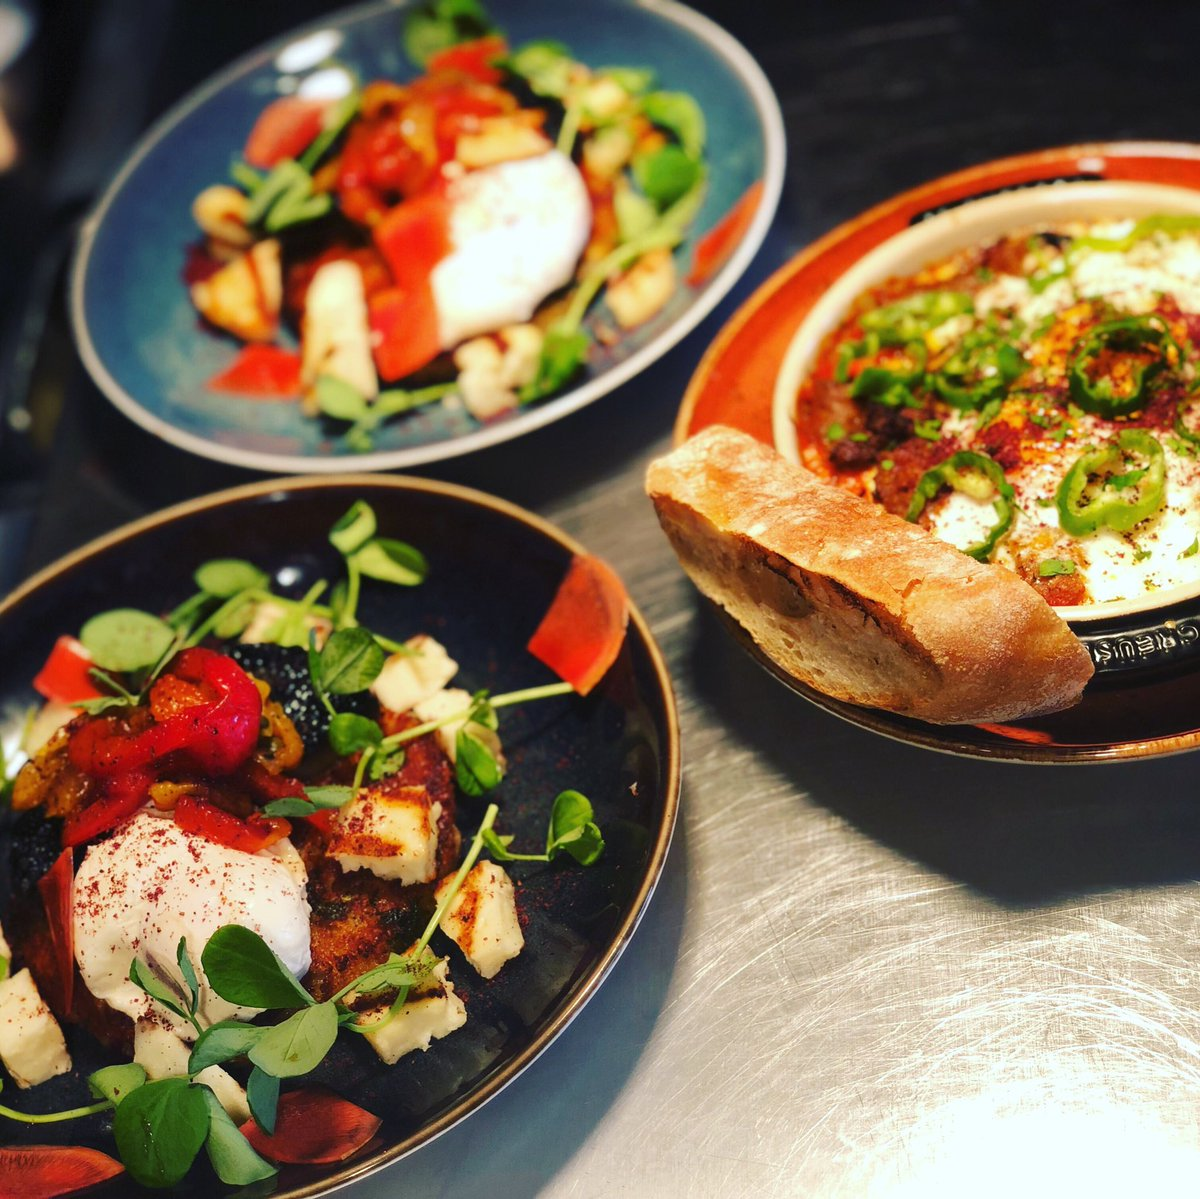 Book in for brunch this Saturday while you still can! @heidibalham offers a peaceful, relaxing experience to ease you in to your Saturday plans 🙂😌! 10am-4pm with £6 Chapel Down Brut #foodandwine #chapeldown #brunch #southlondon #hangovercure #secretbarsoflondon #heidiwine